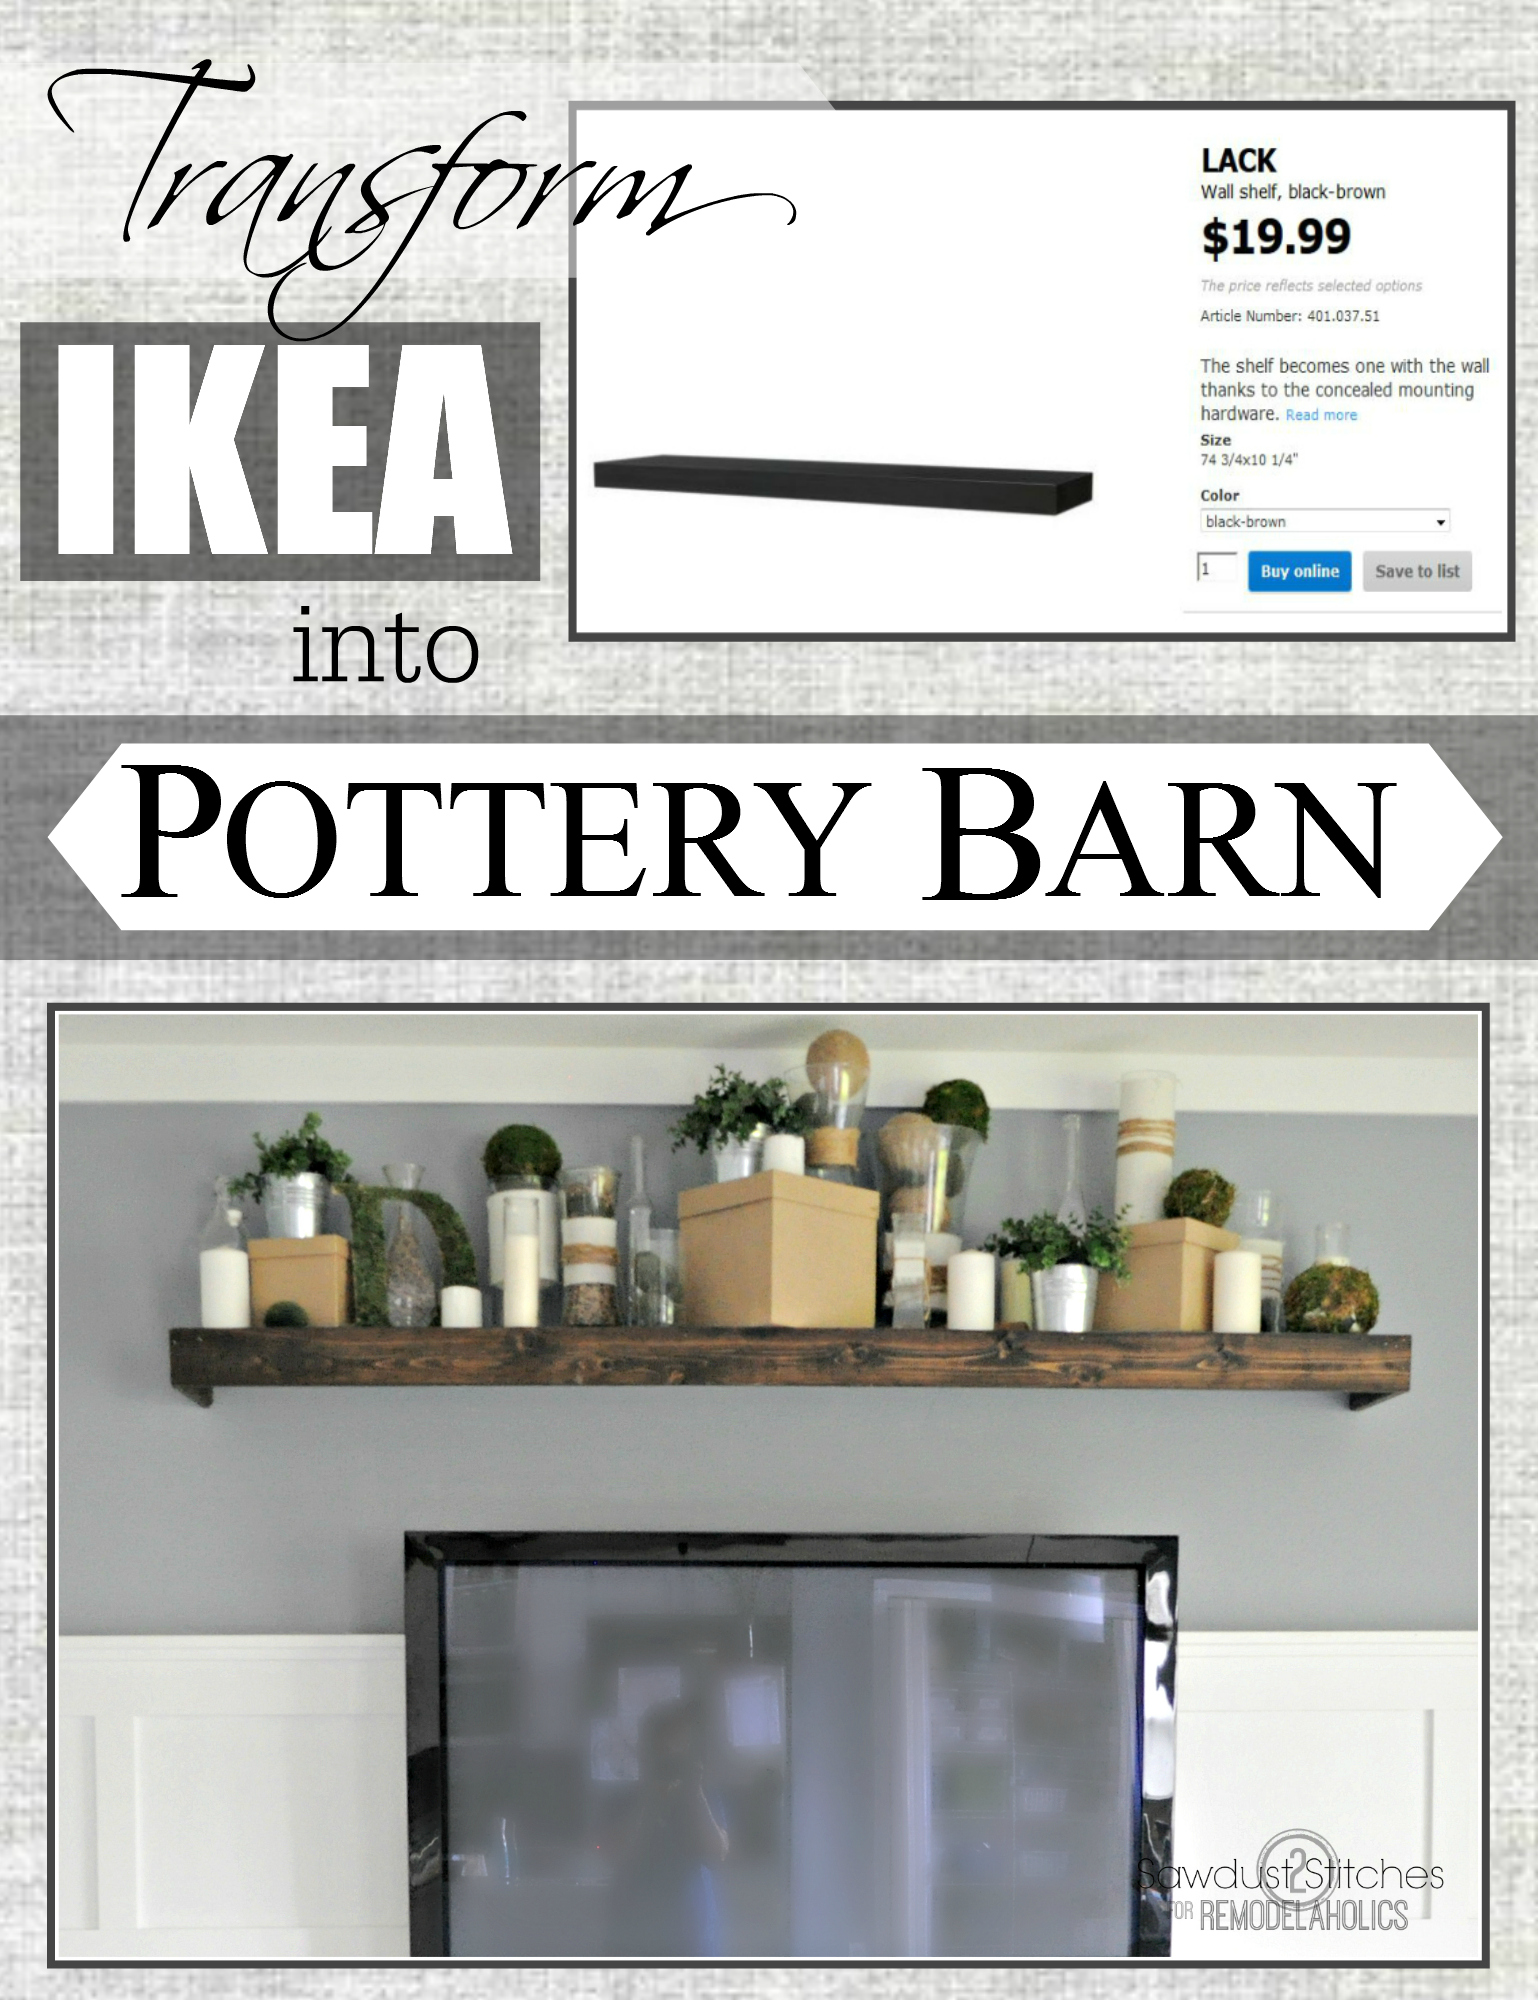 http://www.remodelaholic.com/ikea-shelf-pottery-barn-ledge/